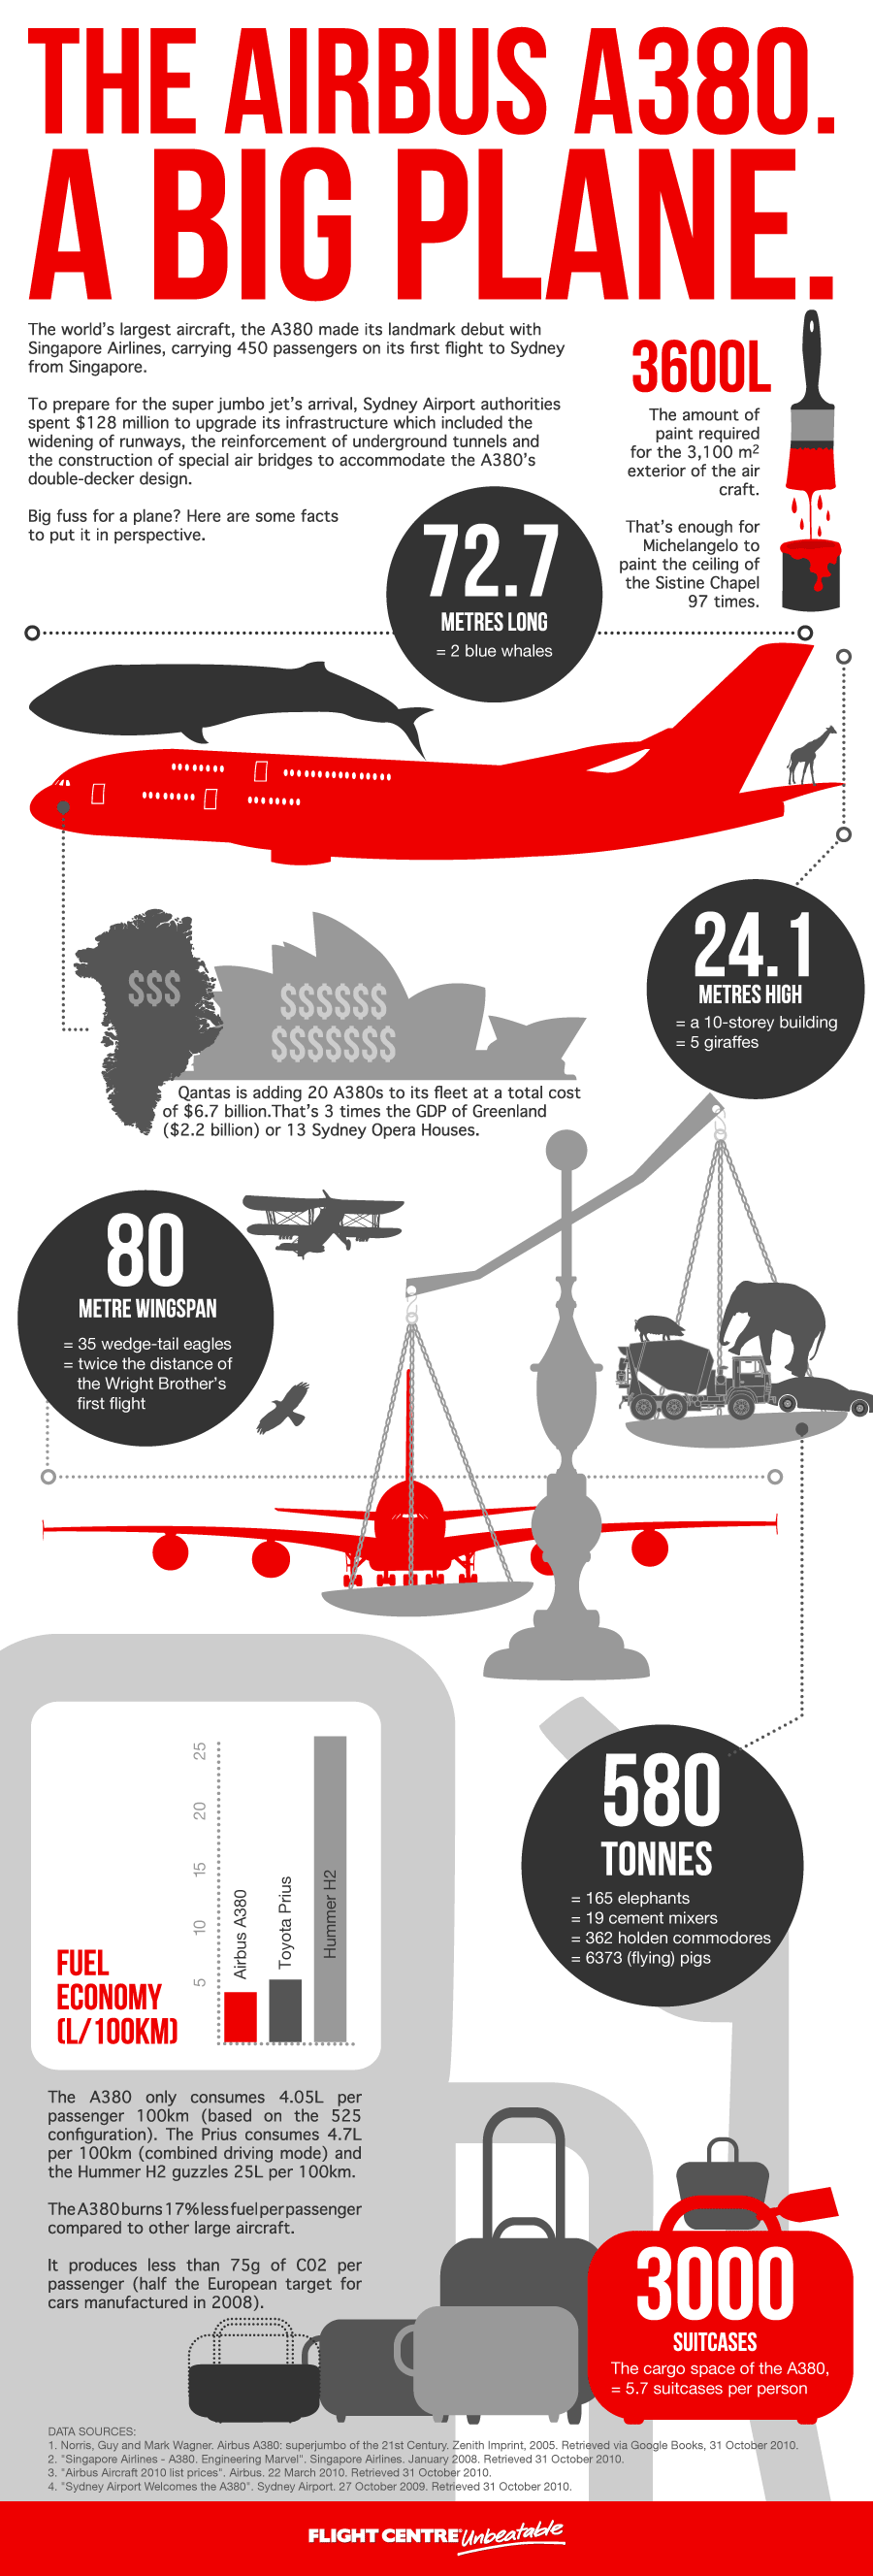 Airbus A380 - A Big Plane (Infographic)